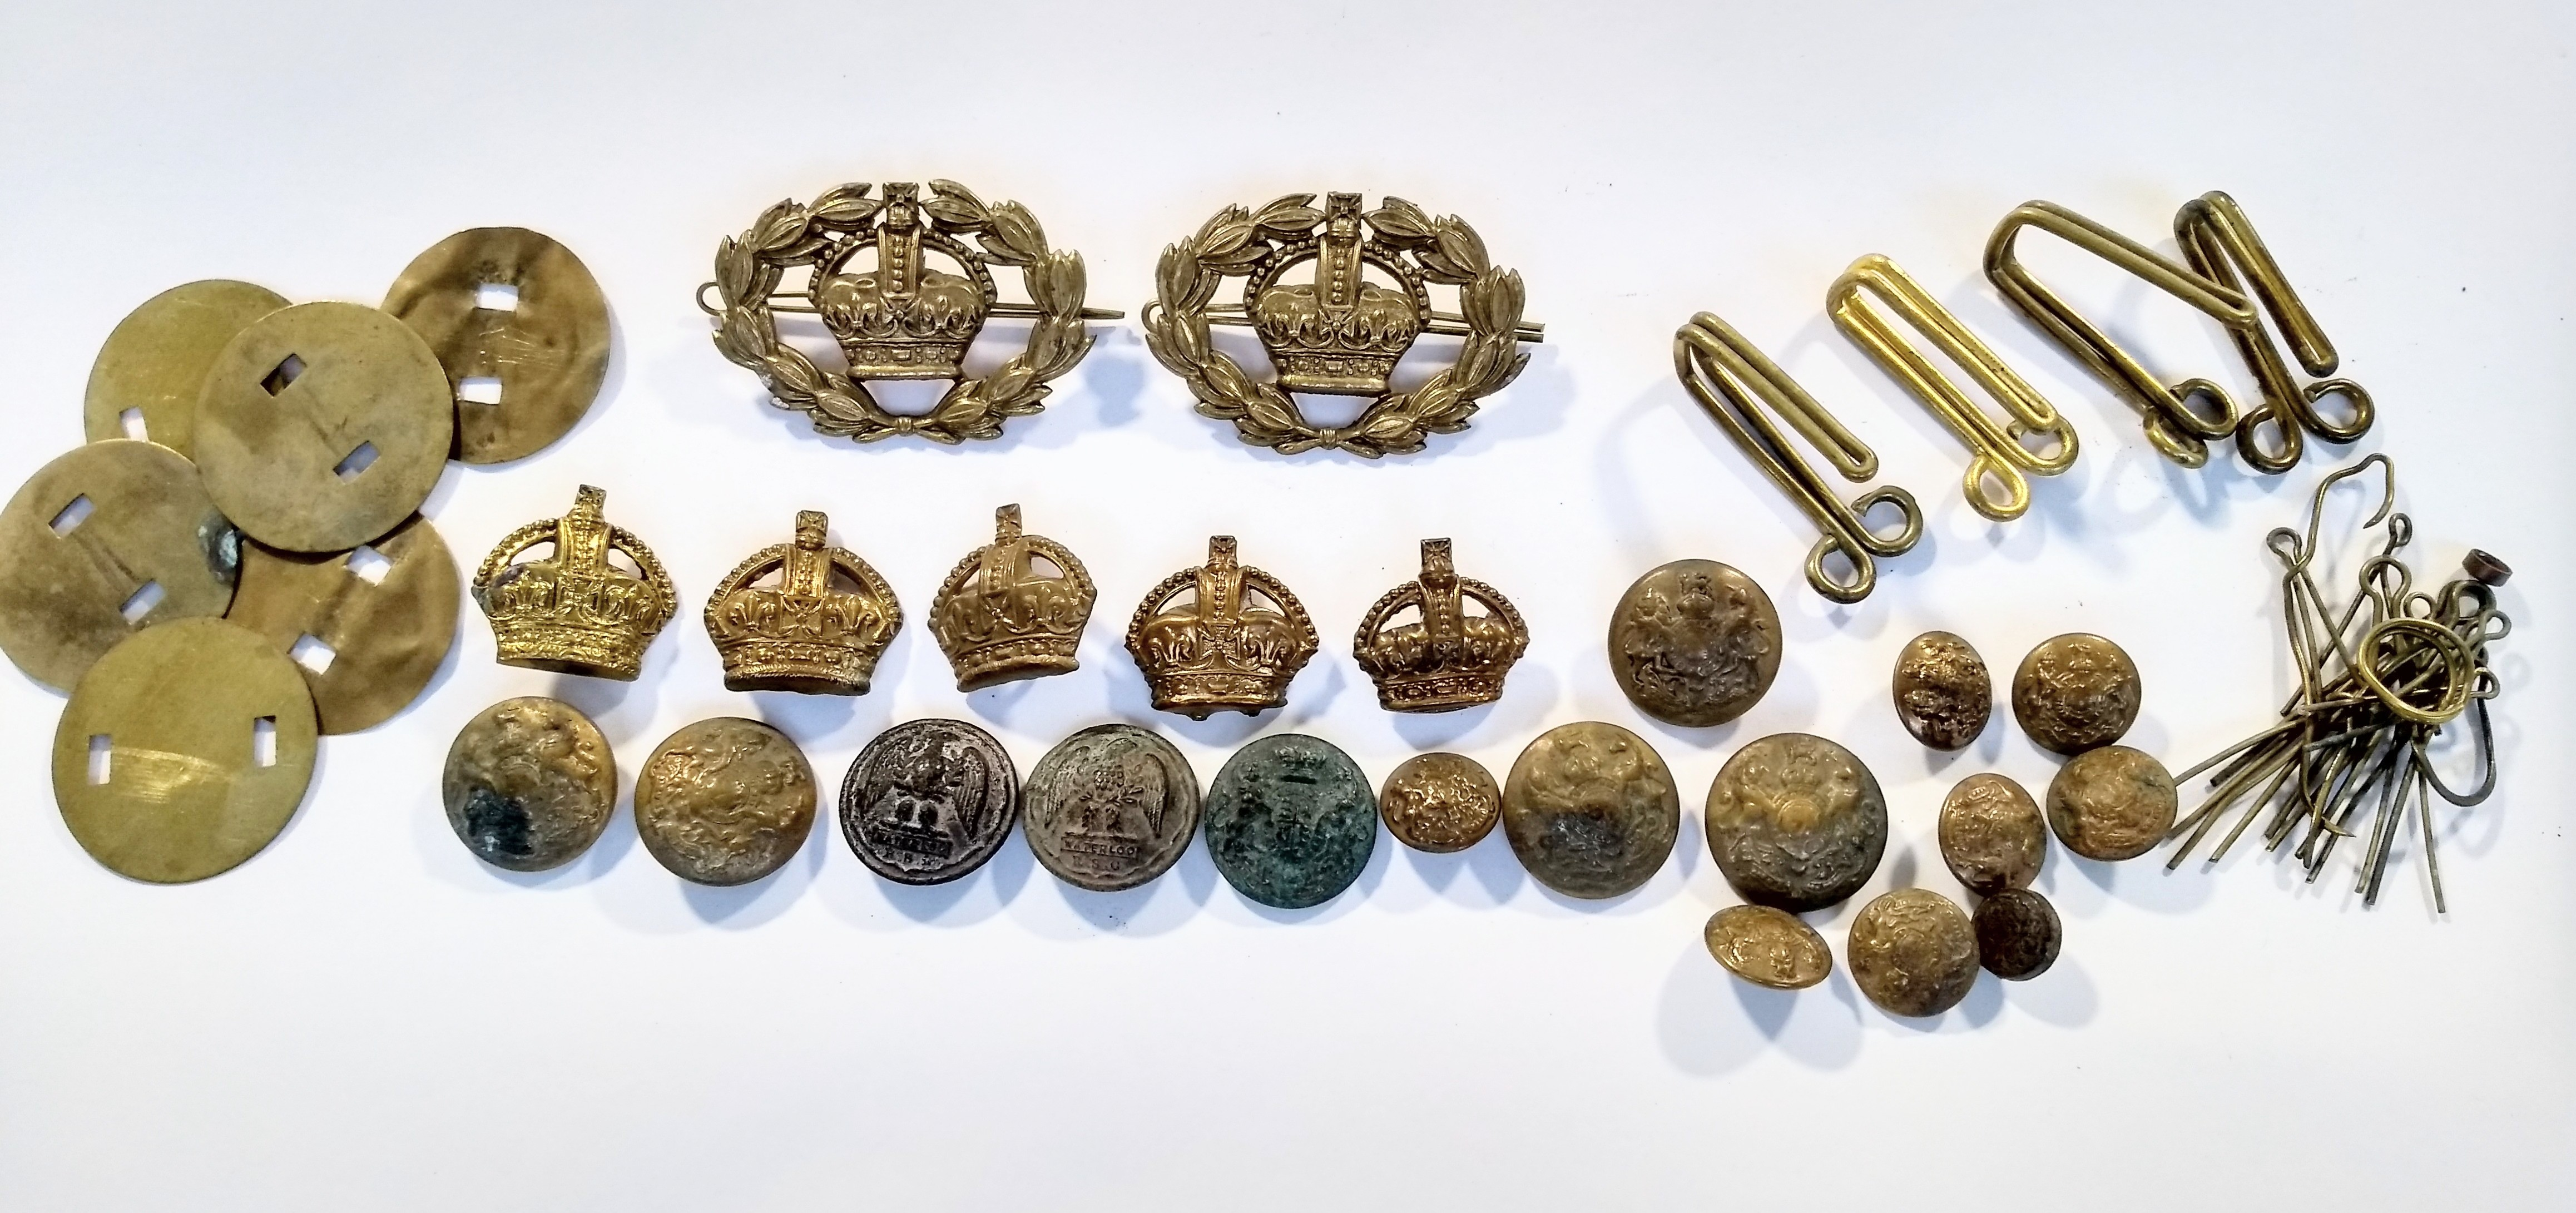 Two British Army Warrant Officer brass rank crown sleeve badges; together with five British Army